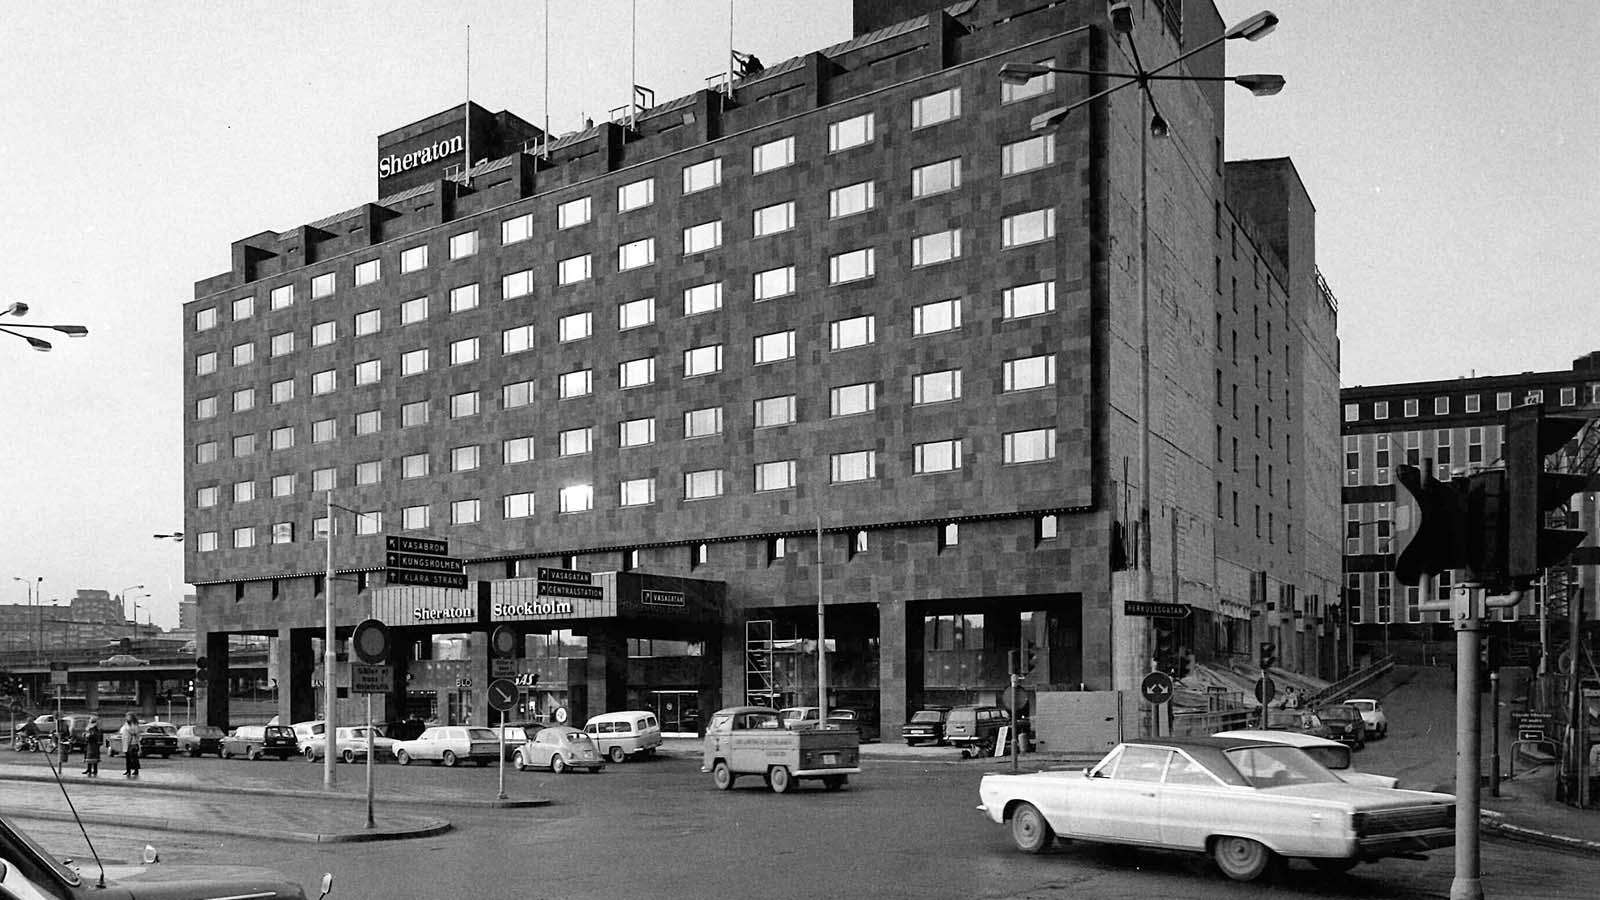 The first Sheraton Hotel in Europe